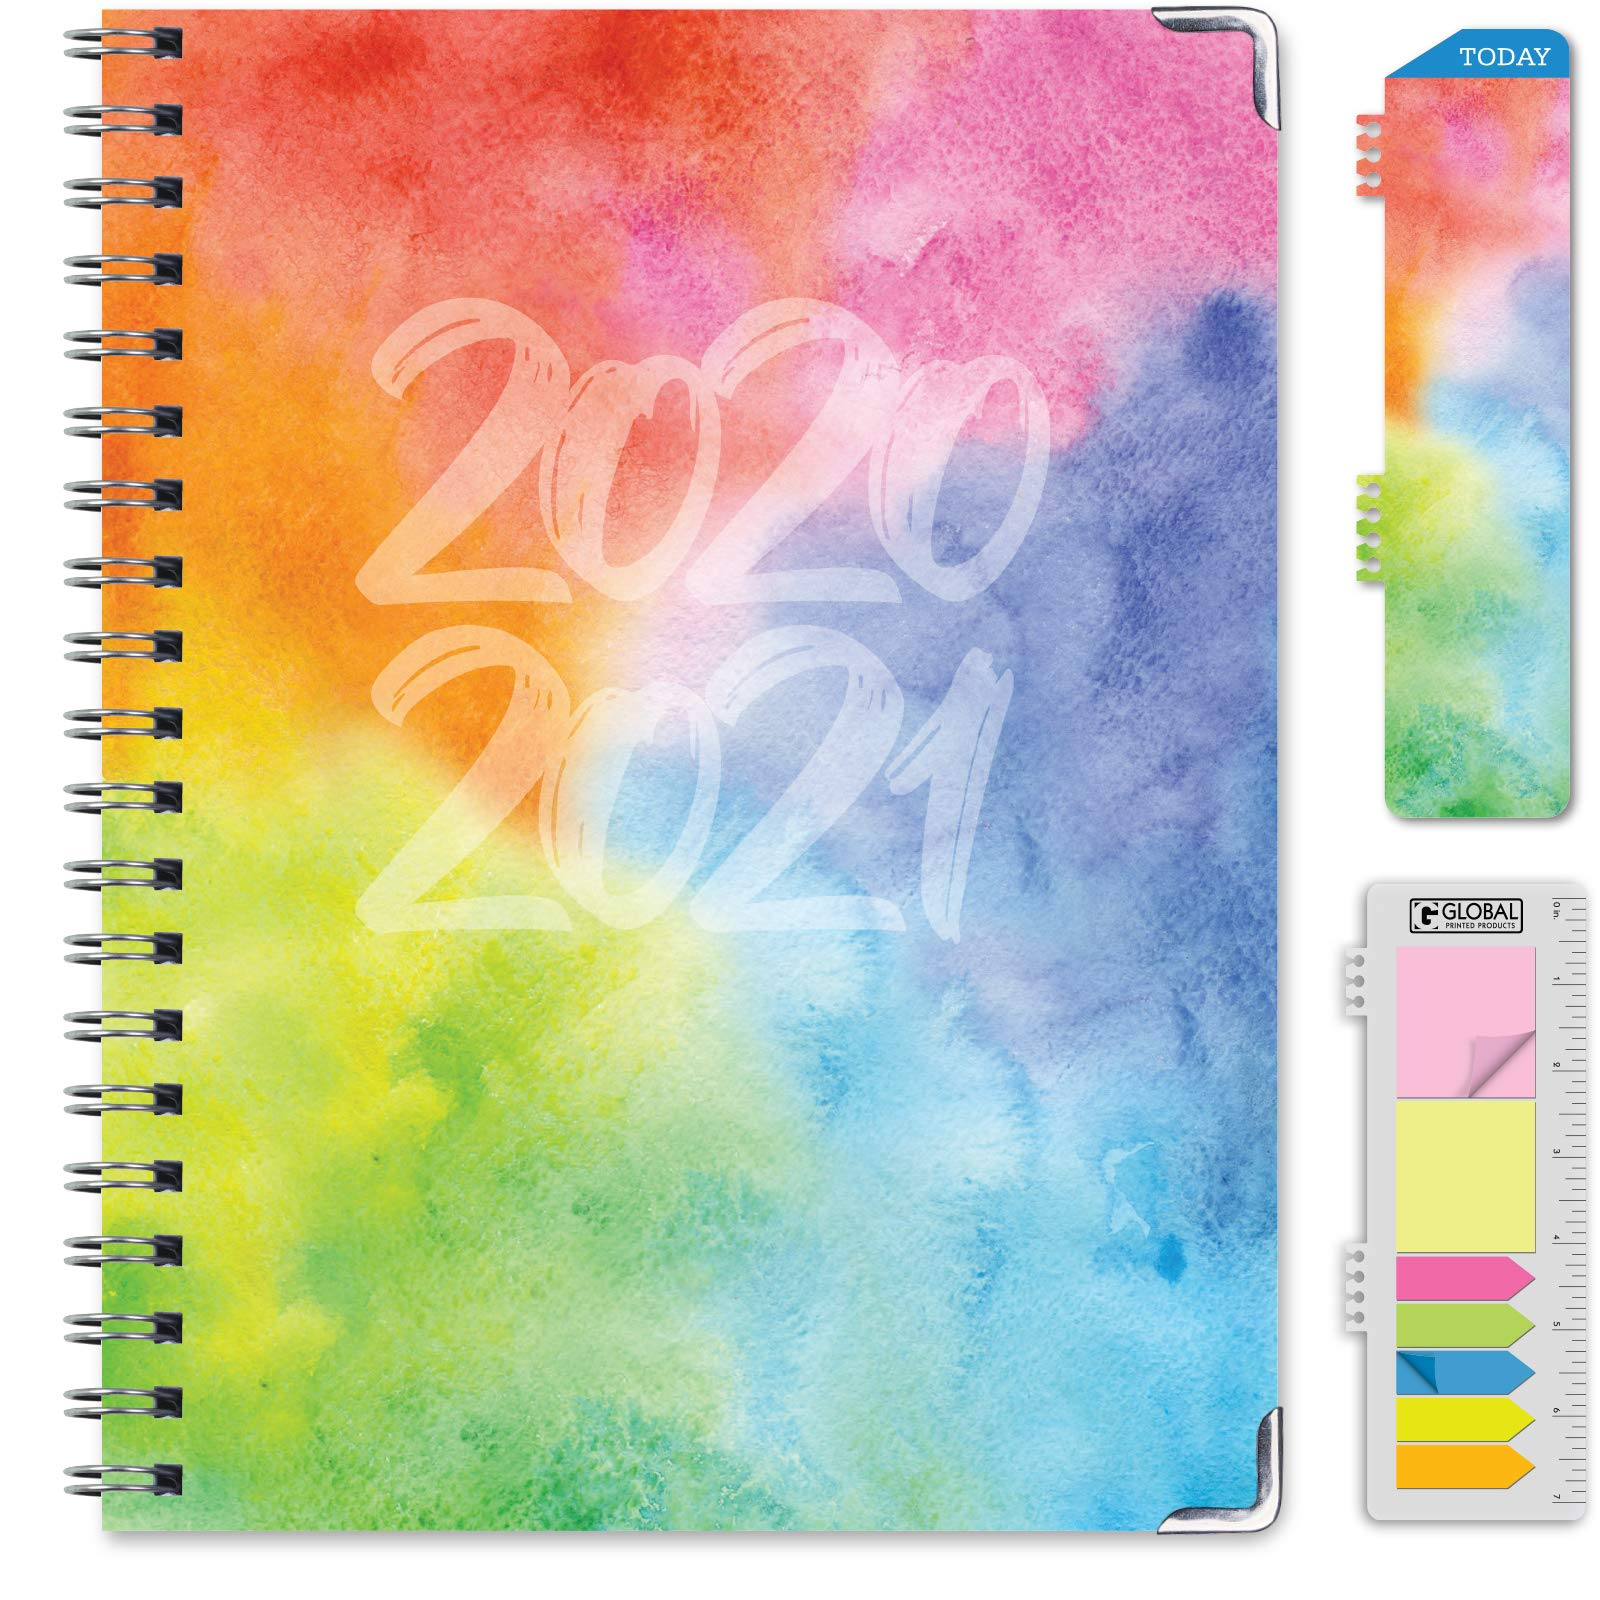 """HARDCOVER Academic Year 2020-2021 Planner: (June 2020 Through July 2021) 8.5""""x11"""" Daily Weekly Monthly Planner Yearly Agenda. Bonus Bookmark, Pocket Folder and Sticky Note Set (Rainbow Watercolors)"""